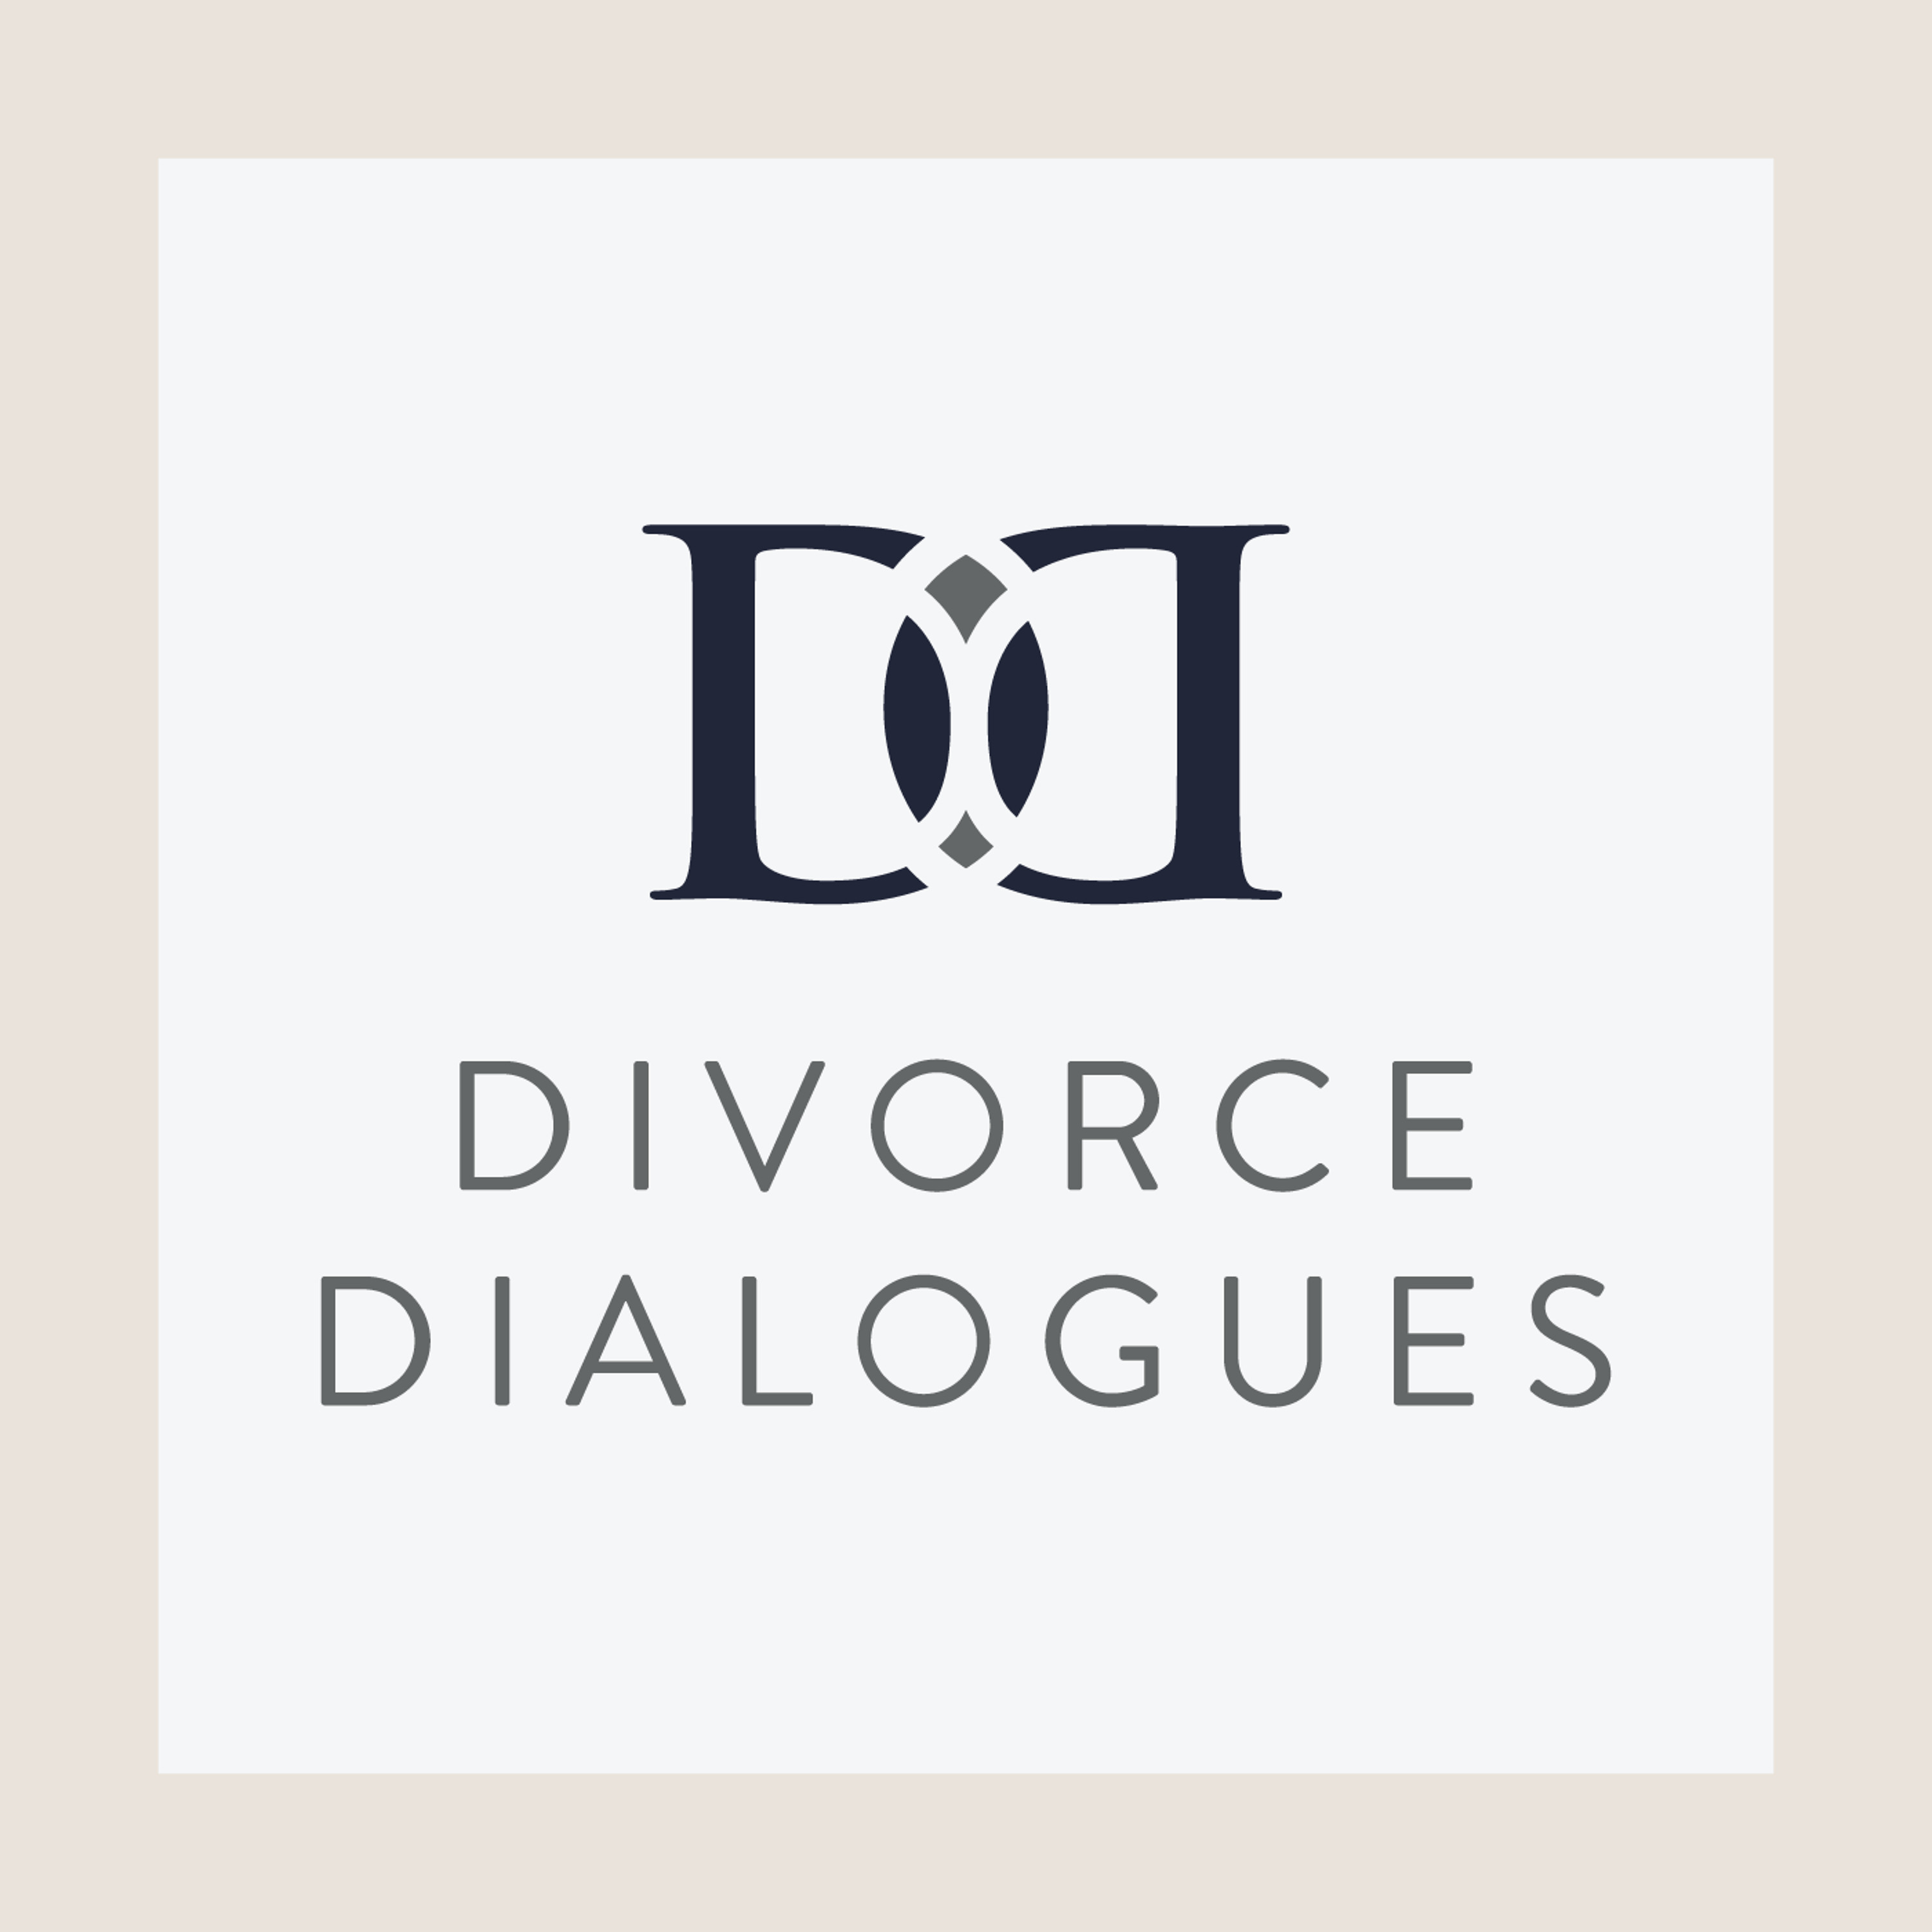 Divorce Dialogues - Stop Poisoning Your Heart and Divorce with Compassion with Neelama Eyres & Michael Schiesser